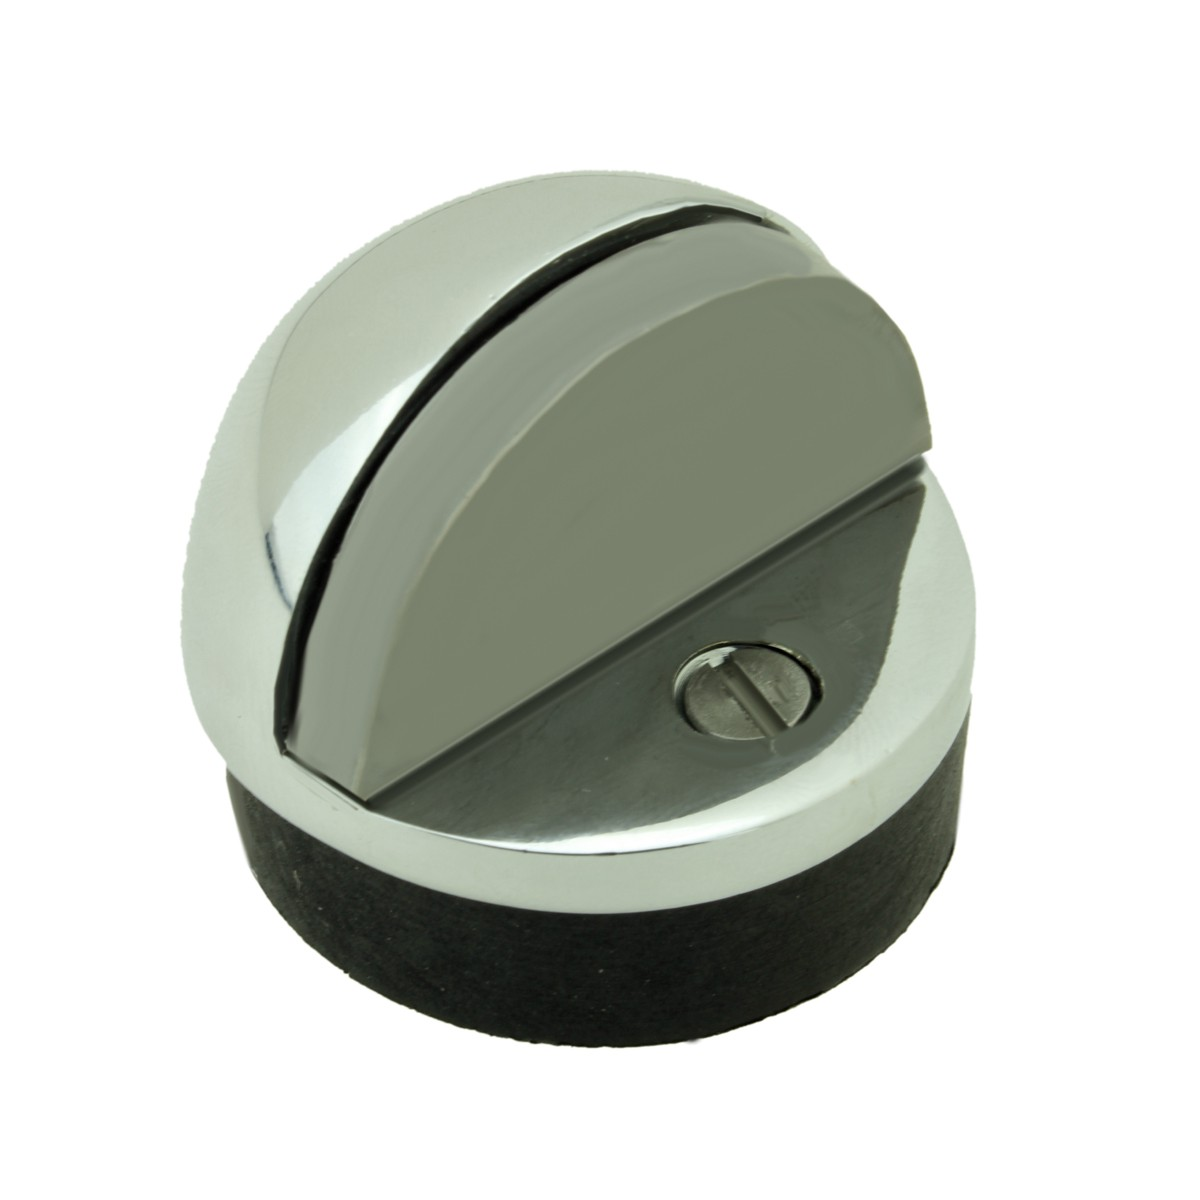 Brass Door Stop Chrome Dome Floor Mount Bumper Low Profile Screws Included